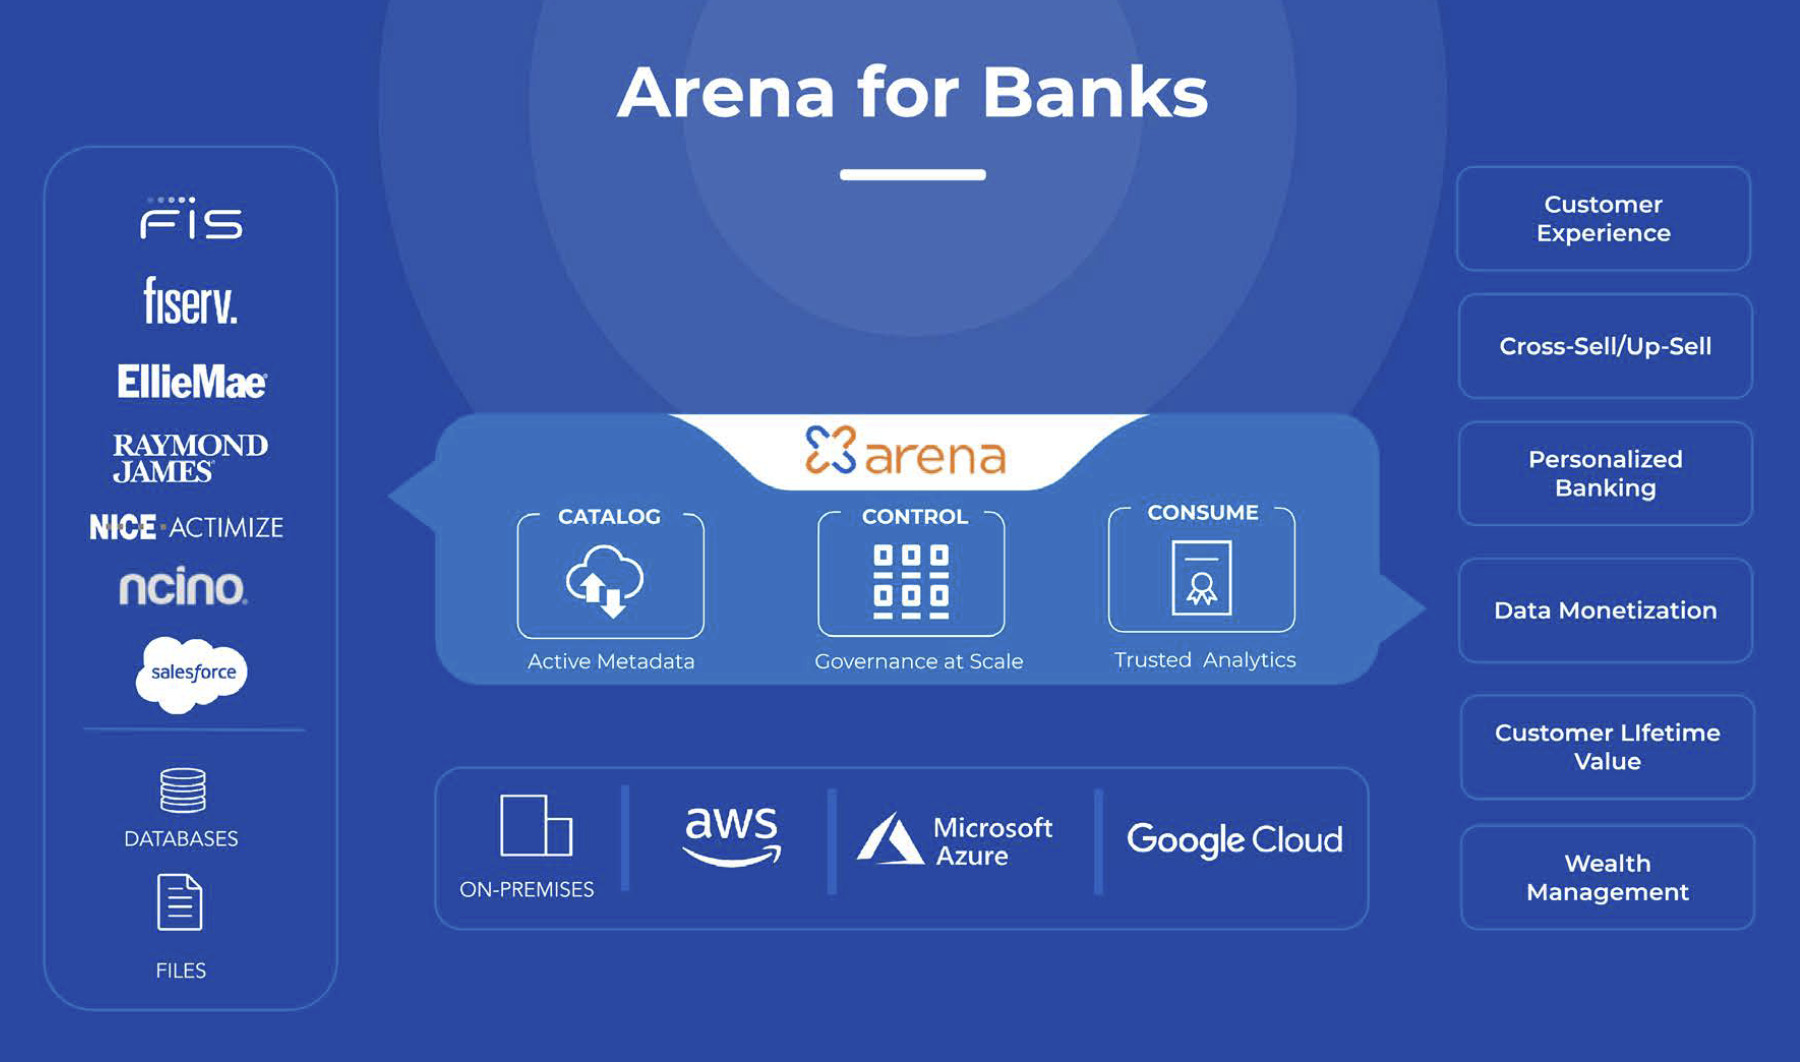 Arena of Banks